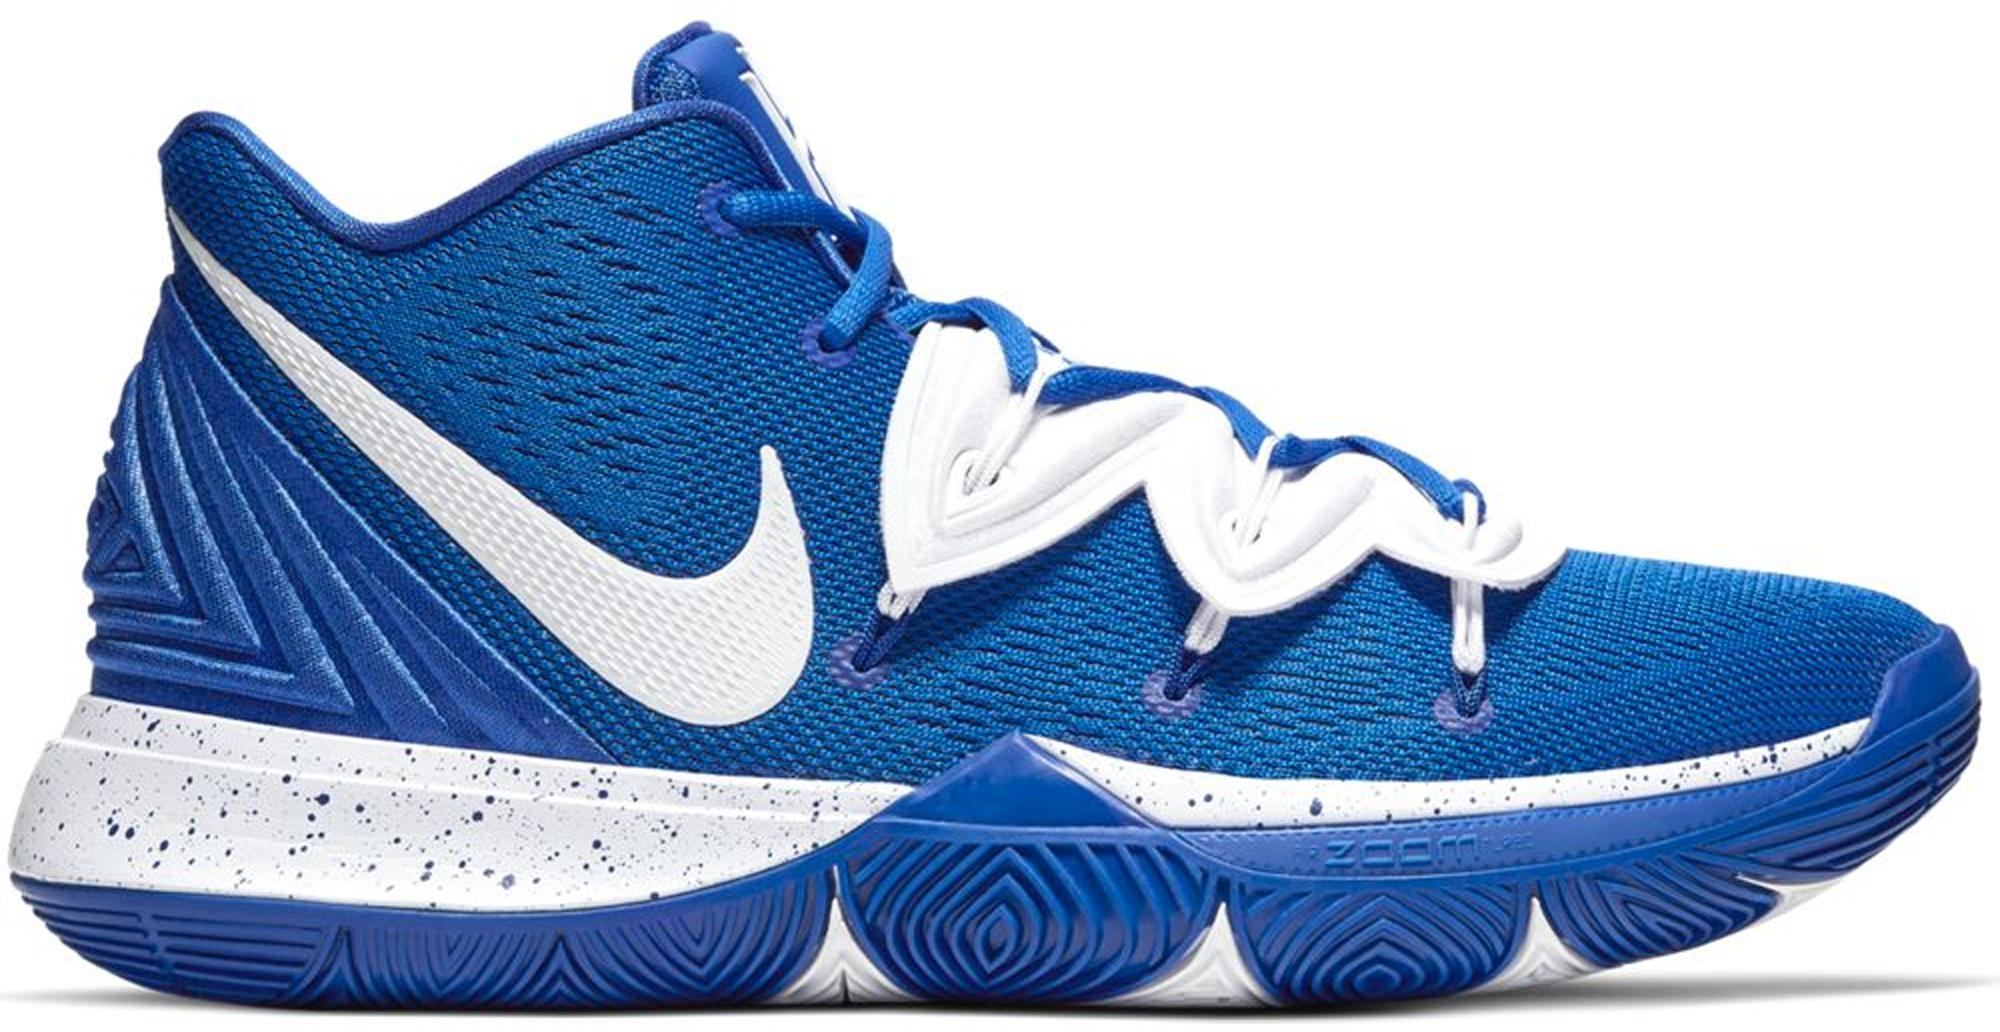 Nike Kyrie 5 Team Game Royal White in